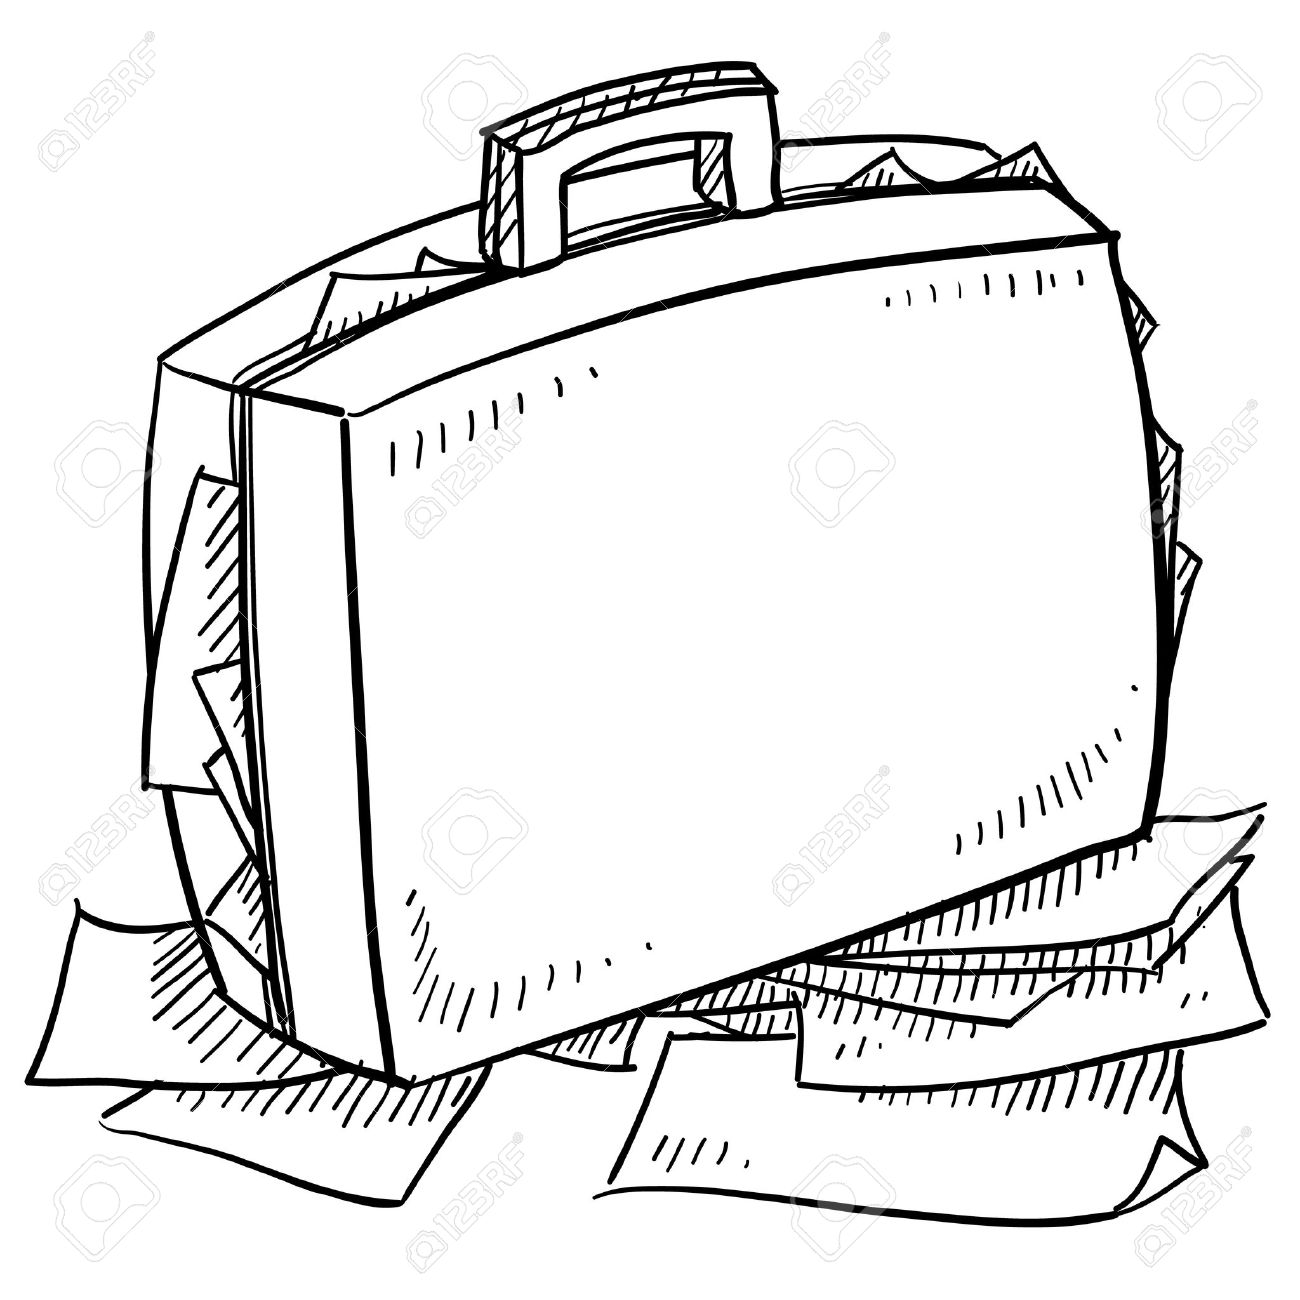 1300x1300 Doodle Style Office Briefcase Stuffed With Papers Sketch In Vector